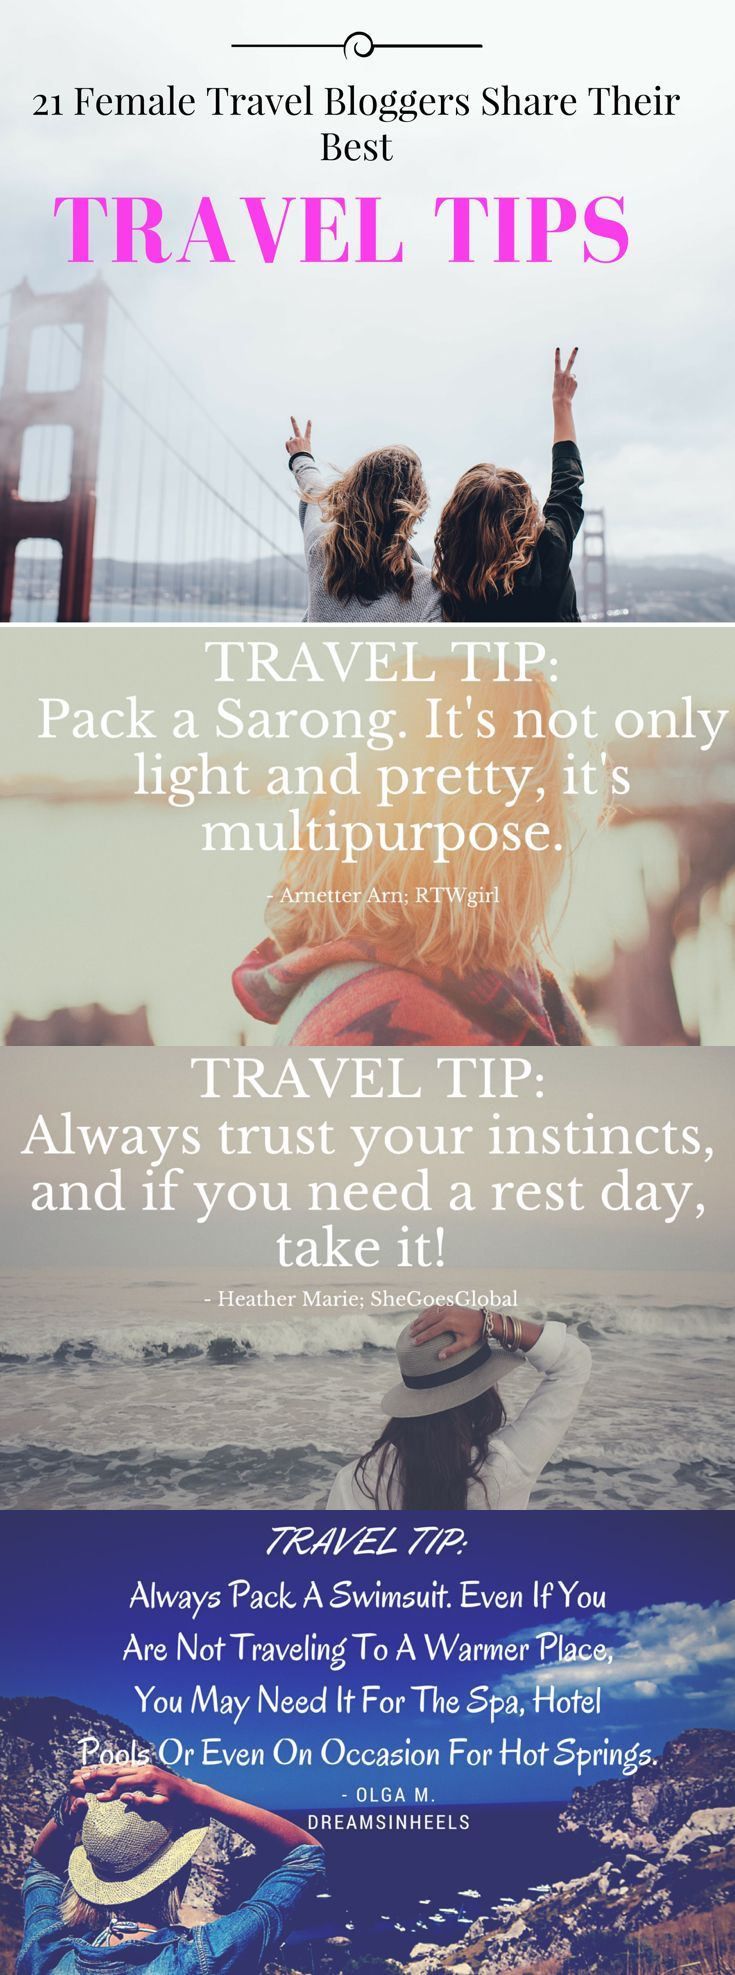 Whether you're embarking on a weekend trip or world tour, this expert advice will make traveling a whole lot easier. Save time and hassle with these 20 tips!